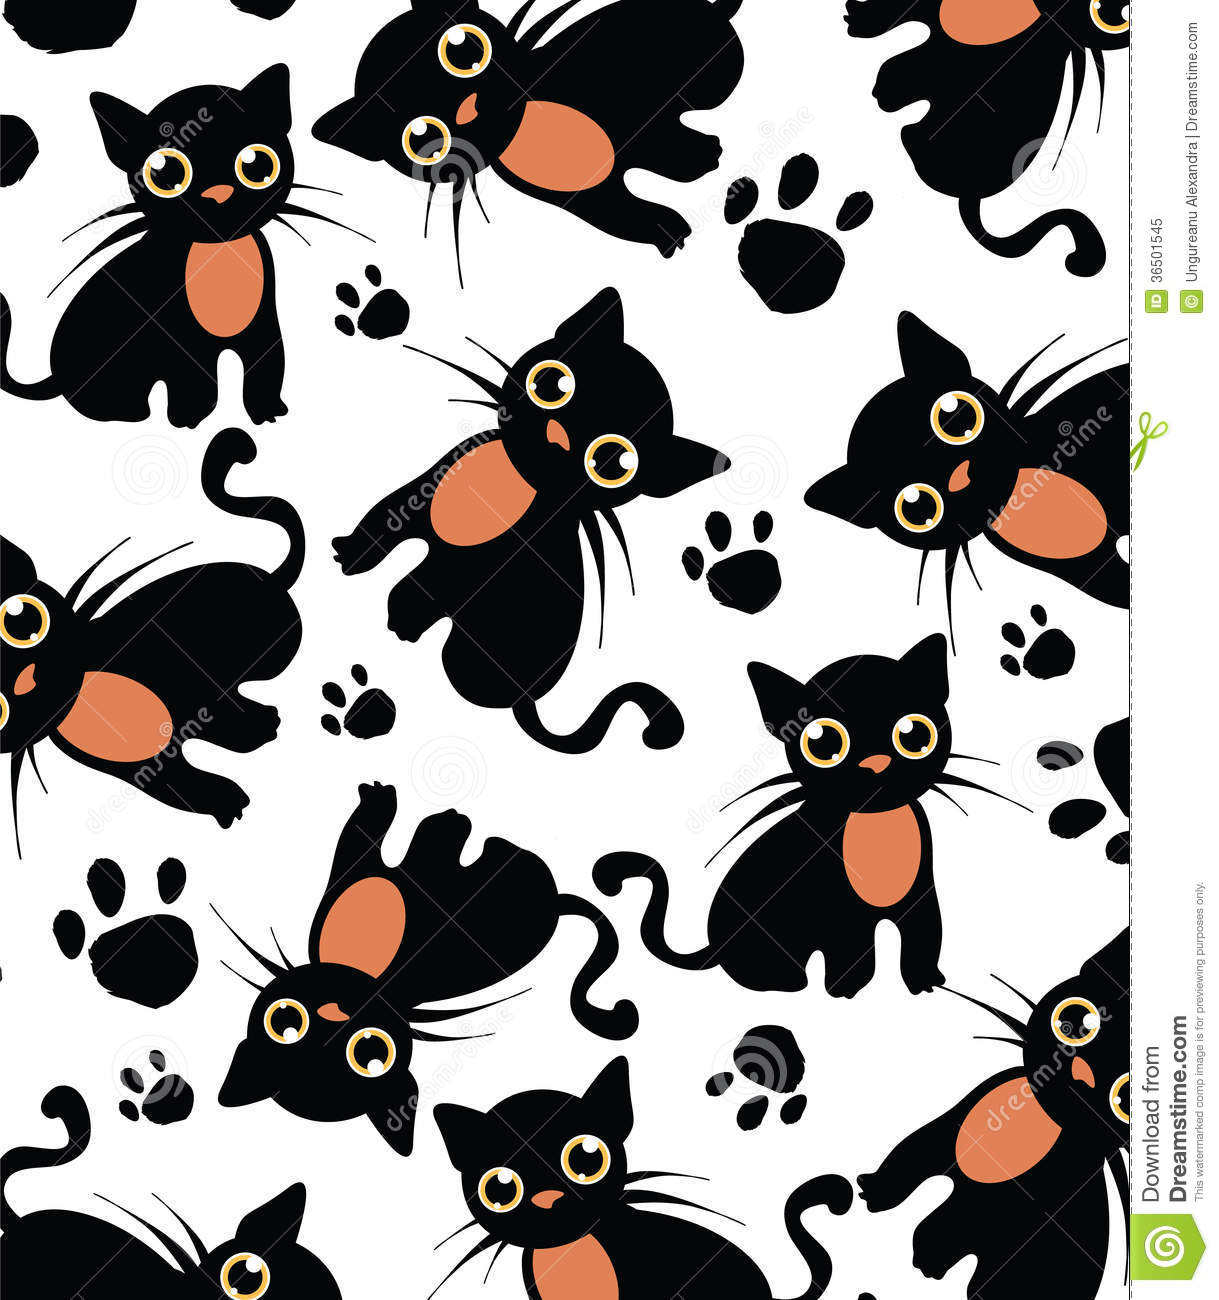 Black Cat Pattern For Sewing